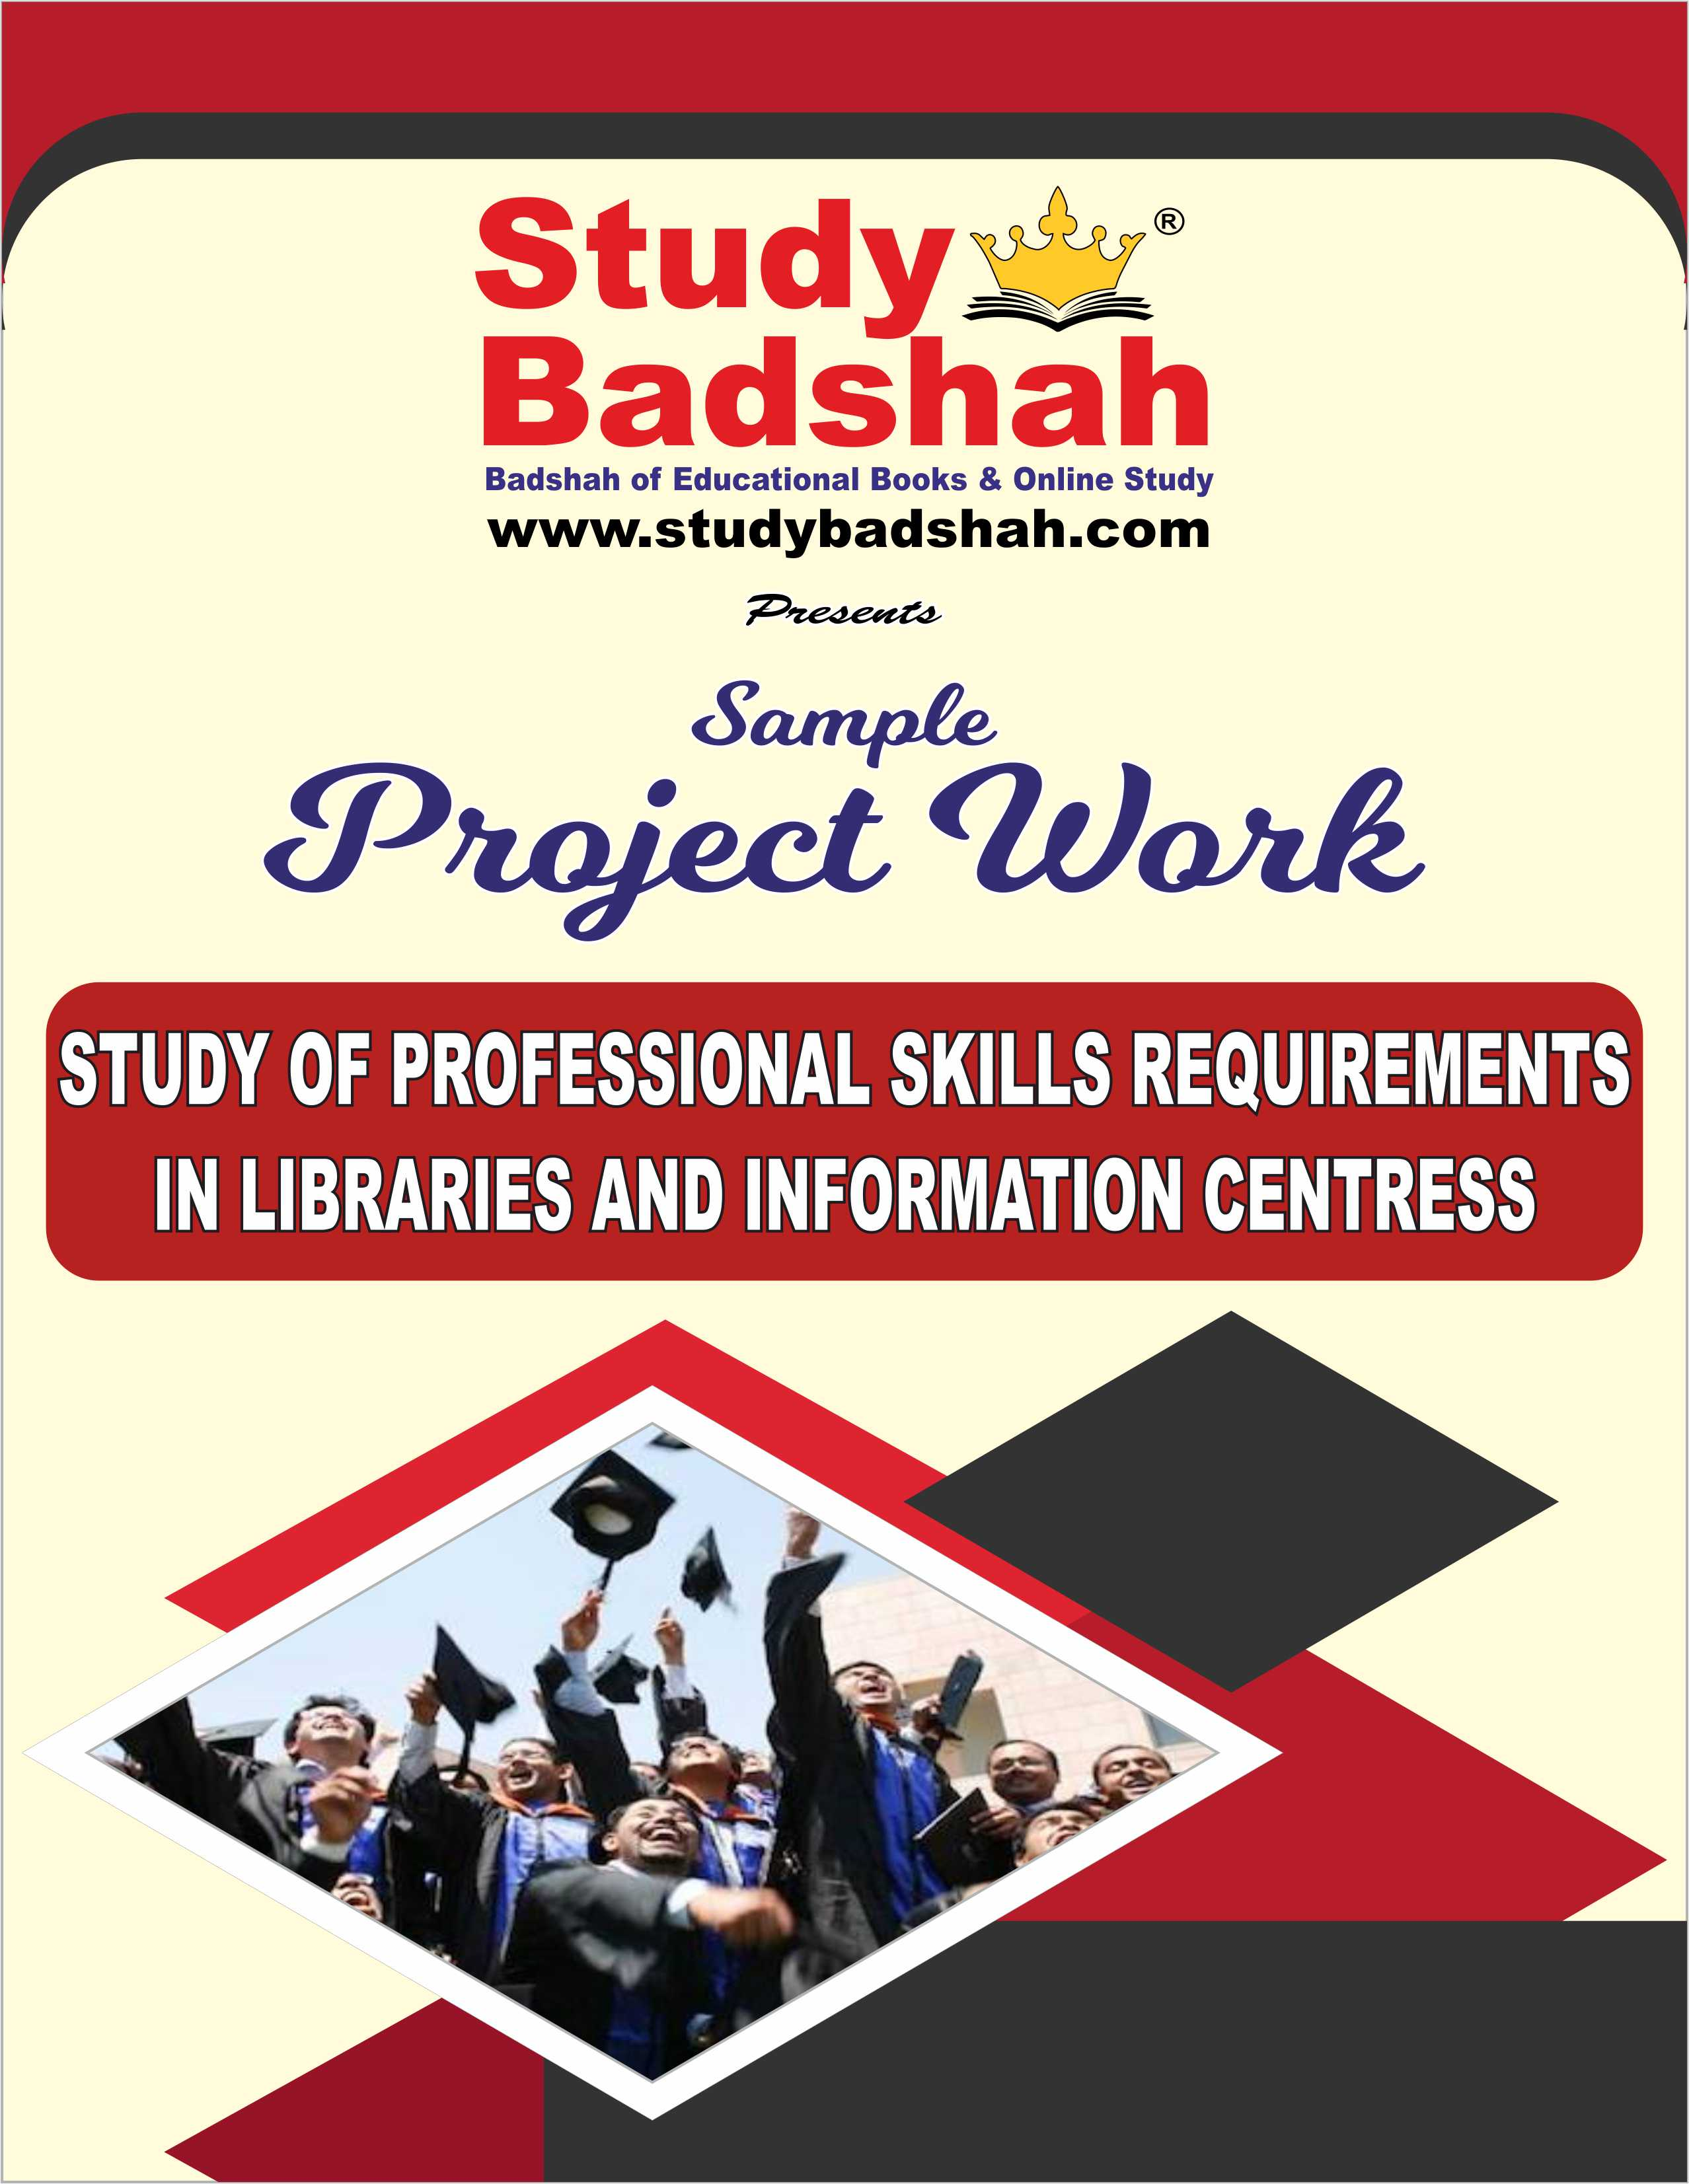 Study of professional skills requirements in libraries and information centres